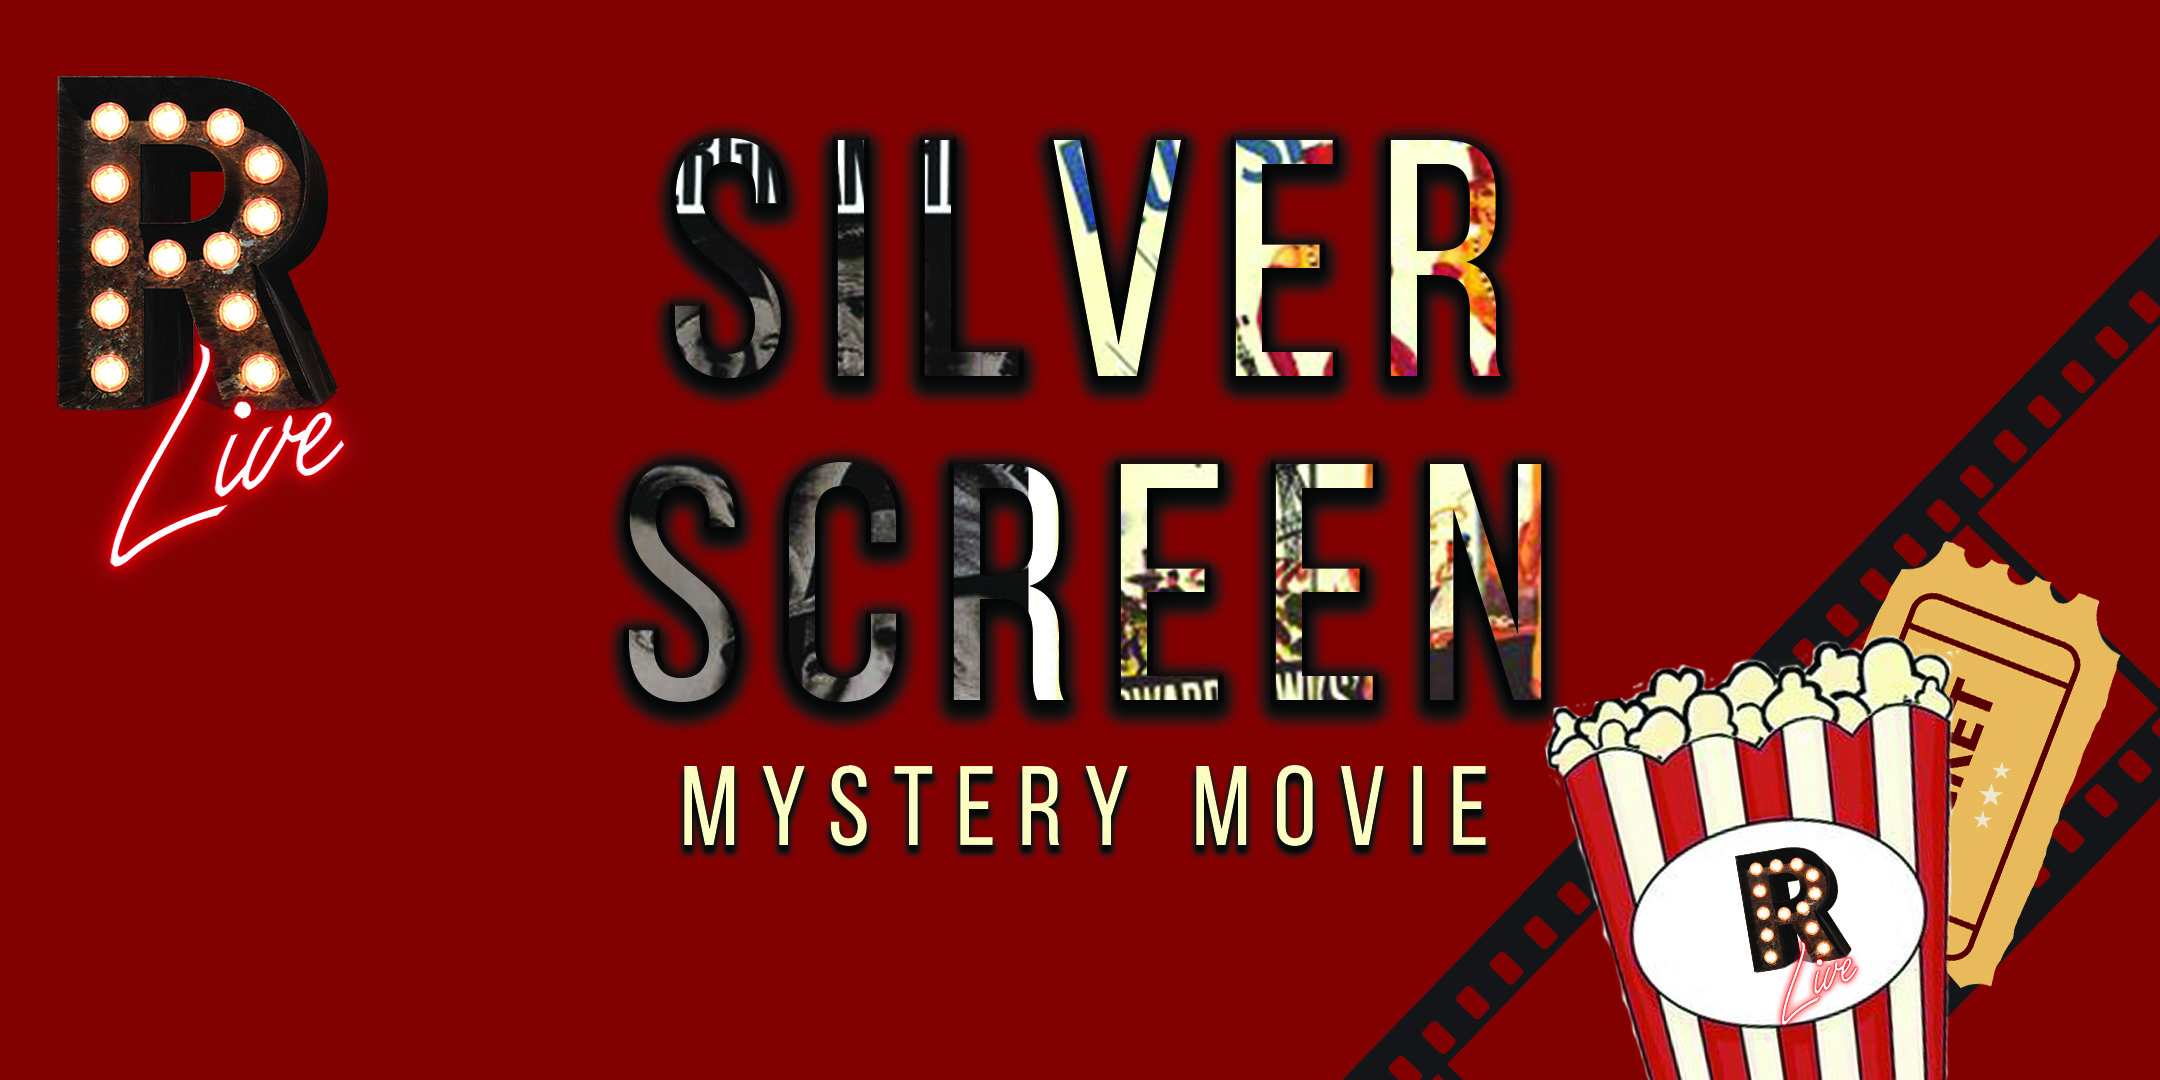 Riverview Live Silver Screen Mystery Movie @ 219 High Street, Burlington NJ 08106